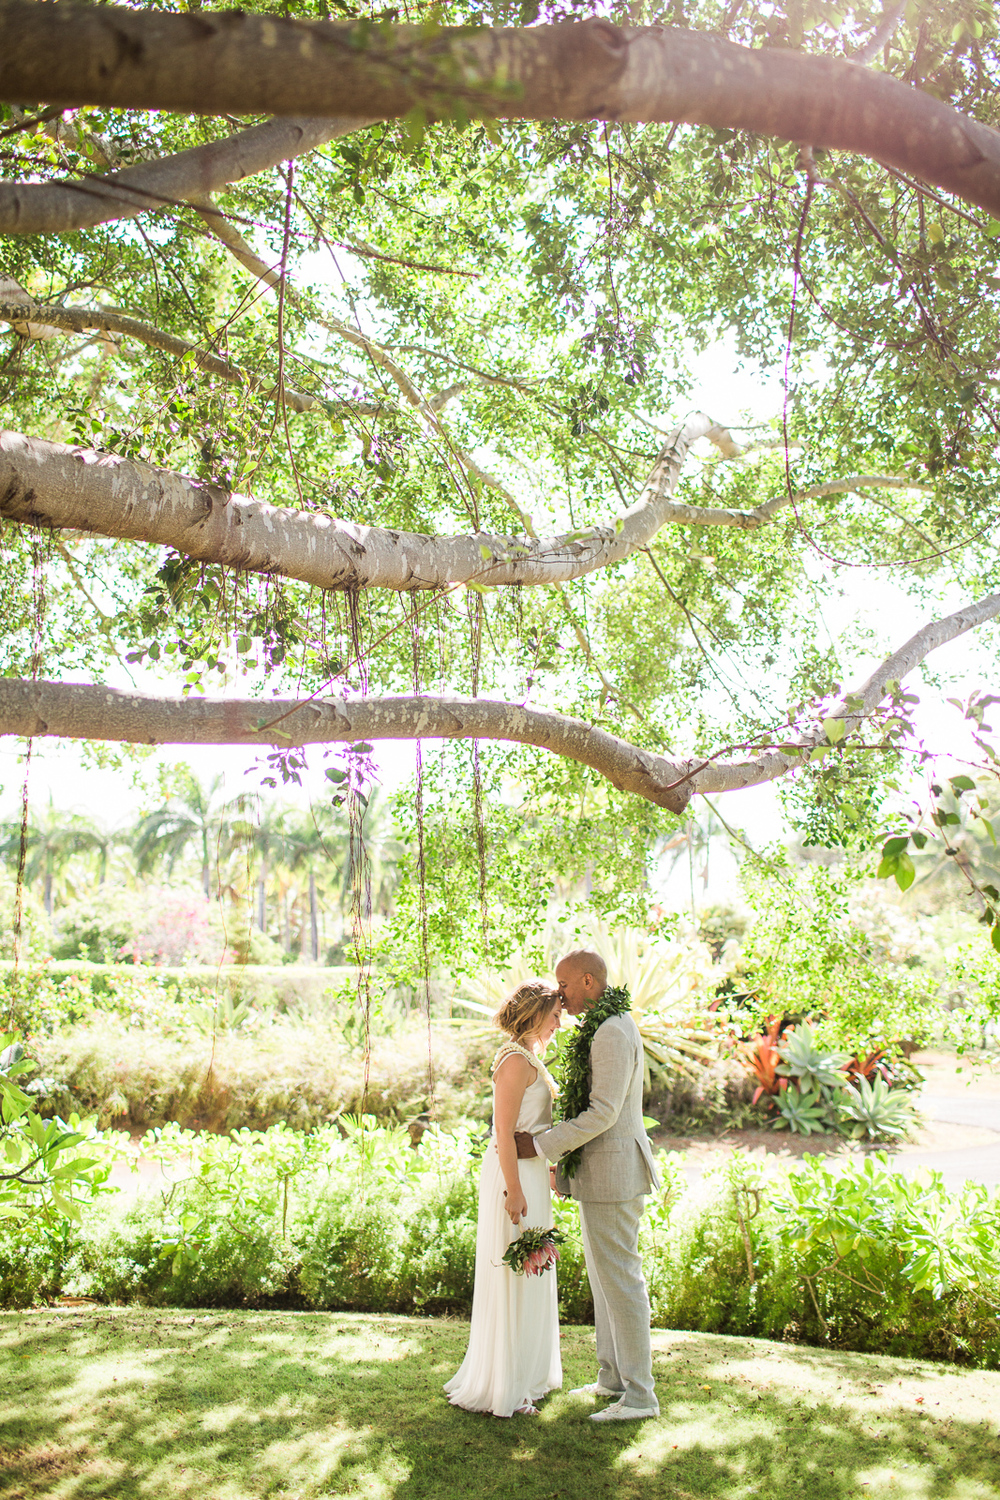 Elope to One of Our Signature Location on Kauai